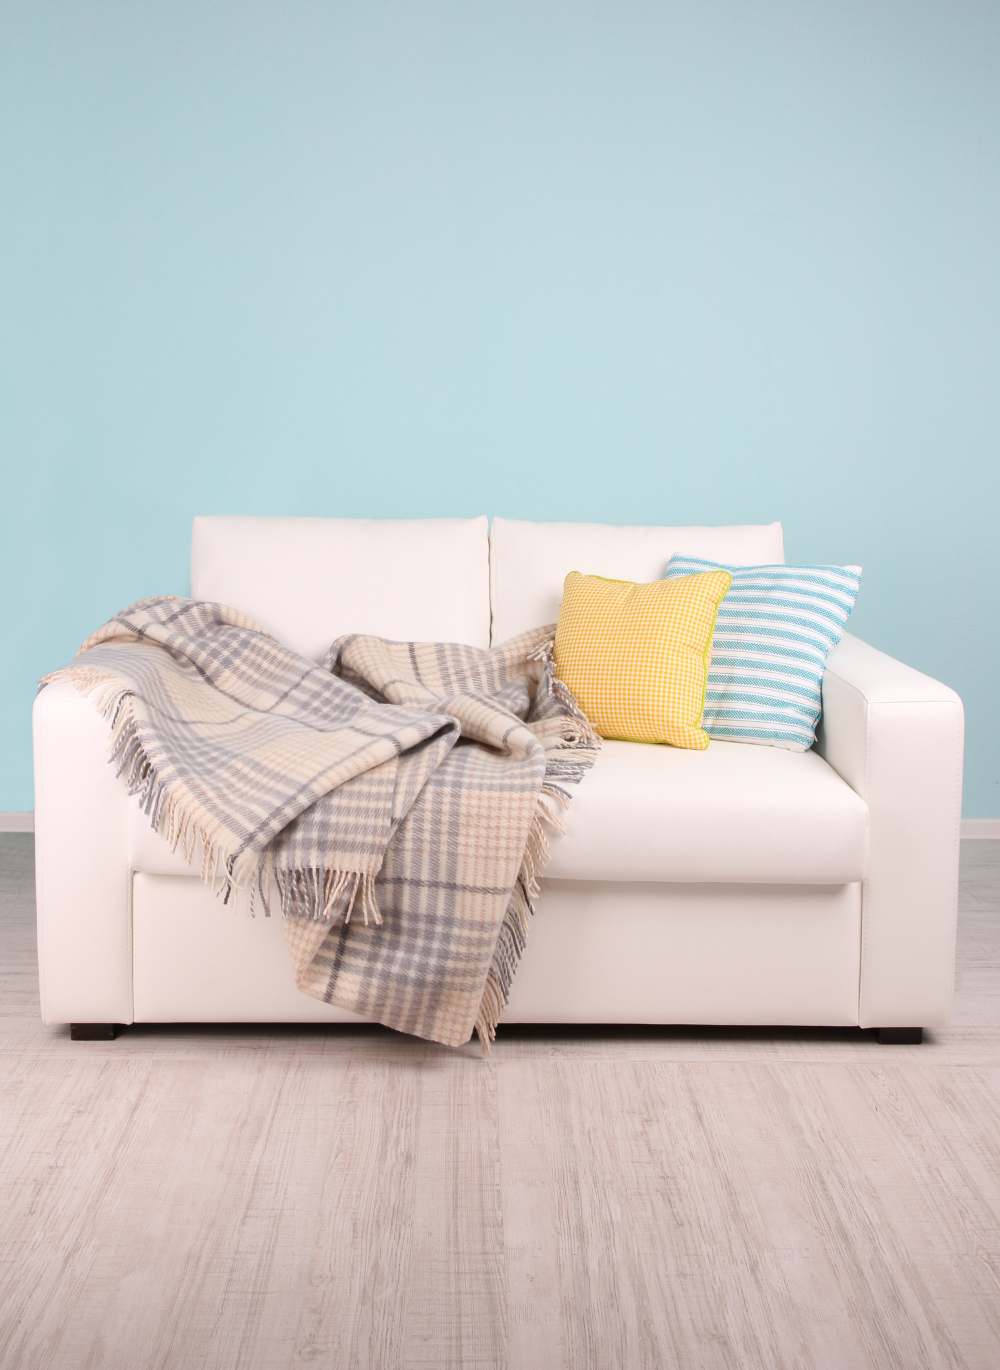 We're happy to help you finish each room. Get over the decision anxiety, and enjoy your home.